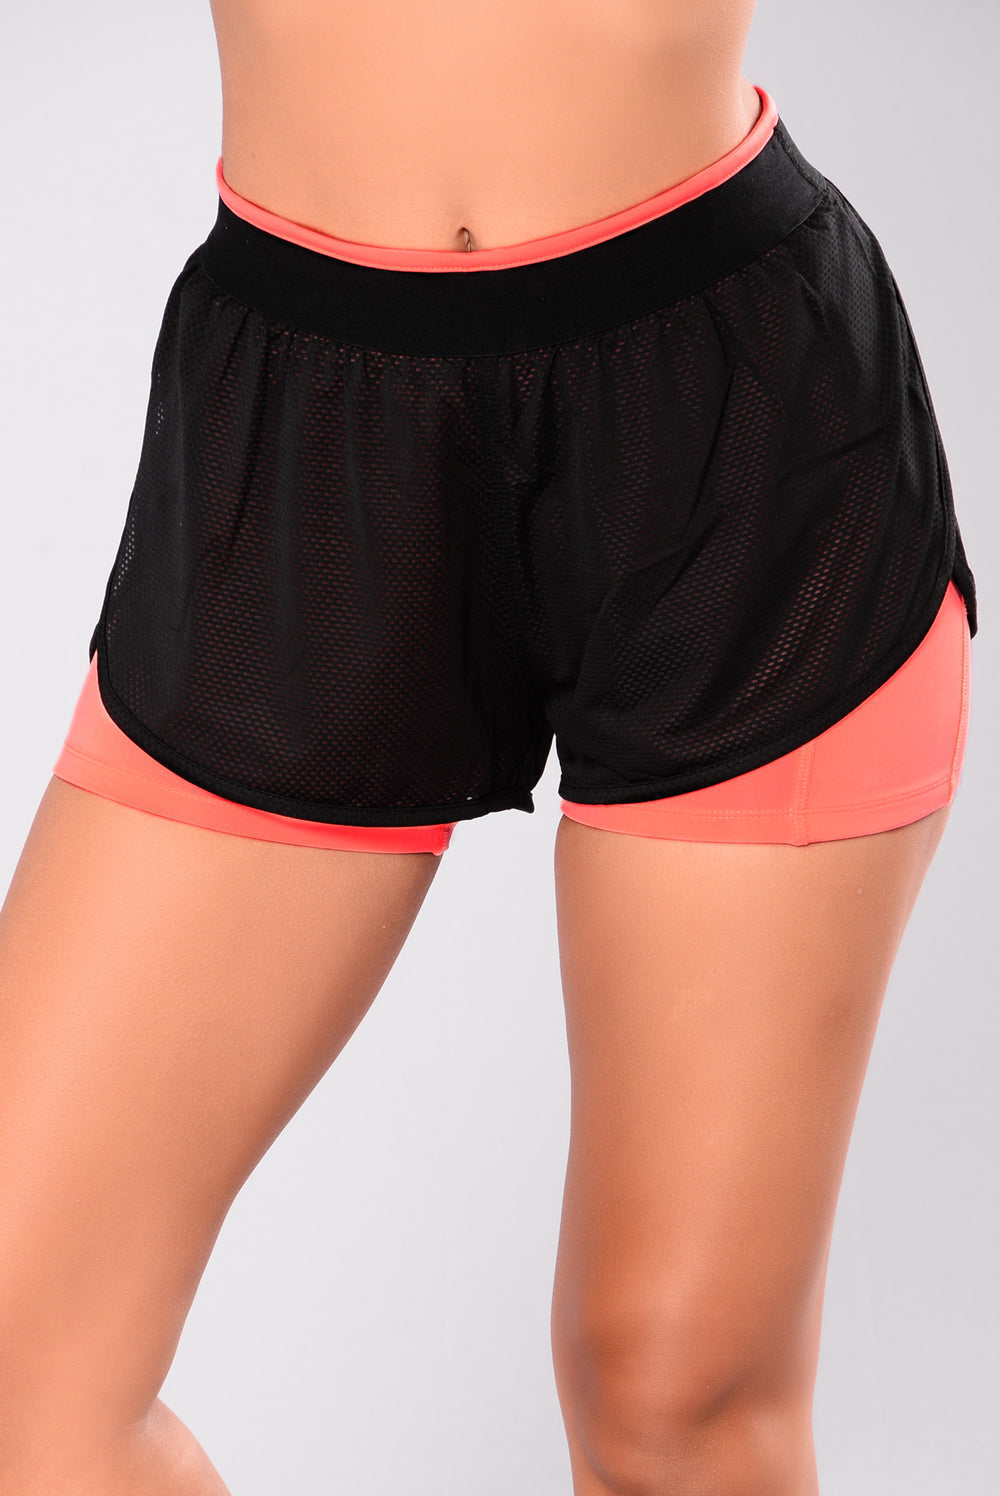 Hidden Hills Layered Active Shorts - Black/Coral